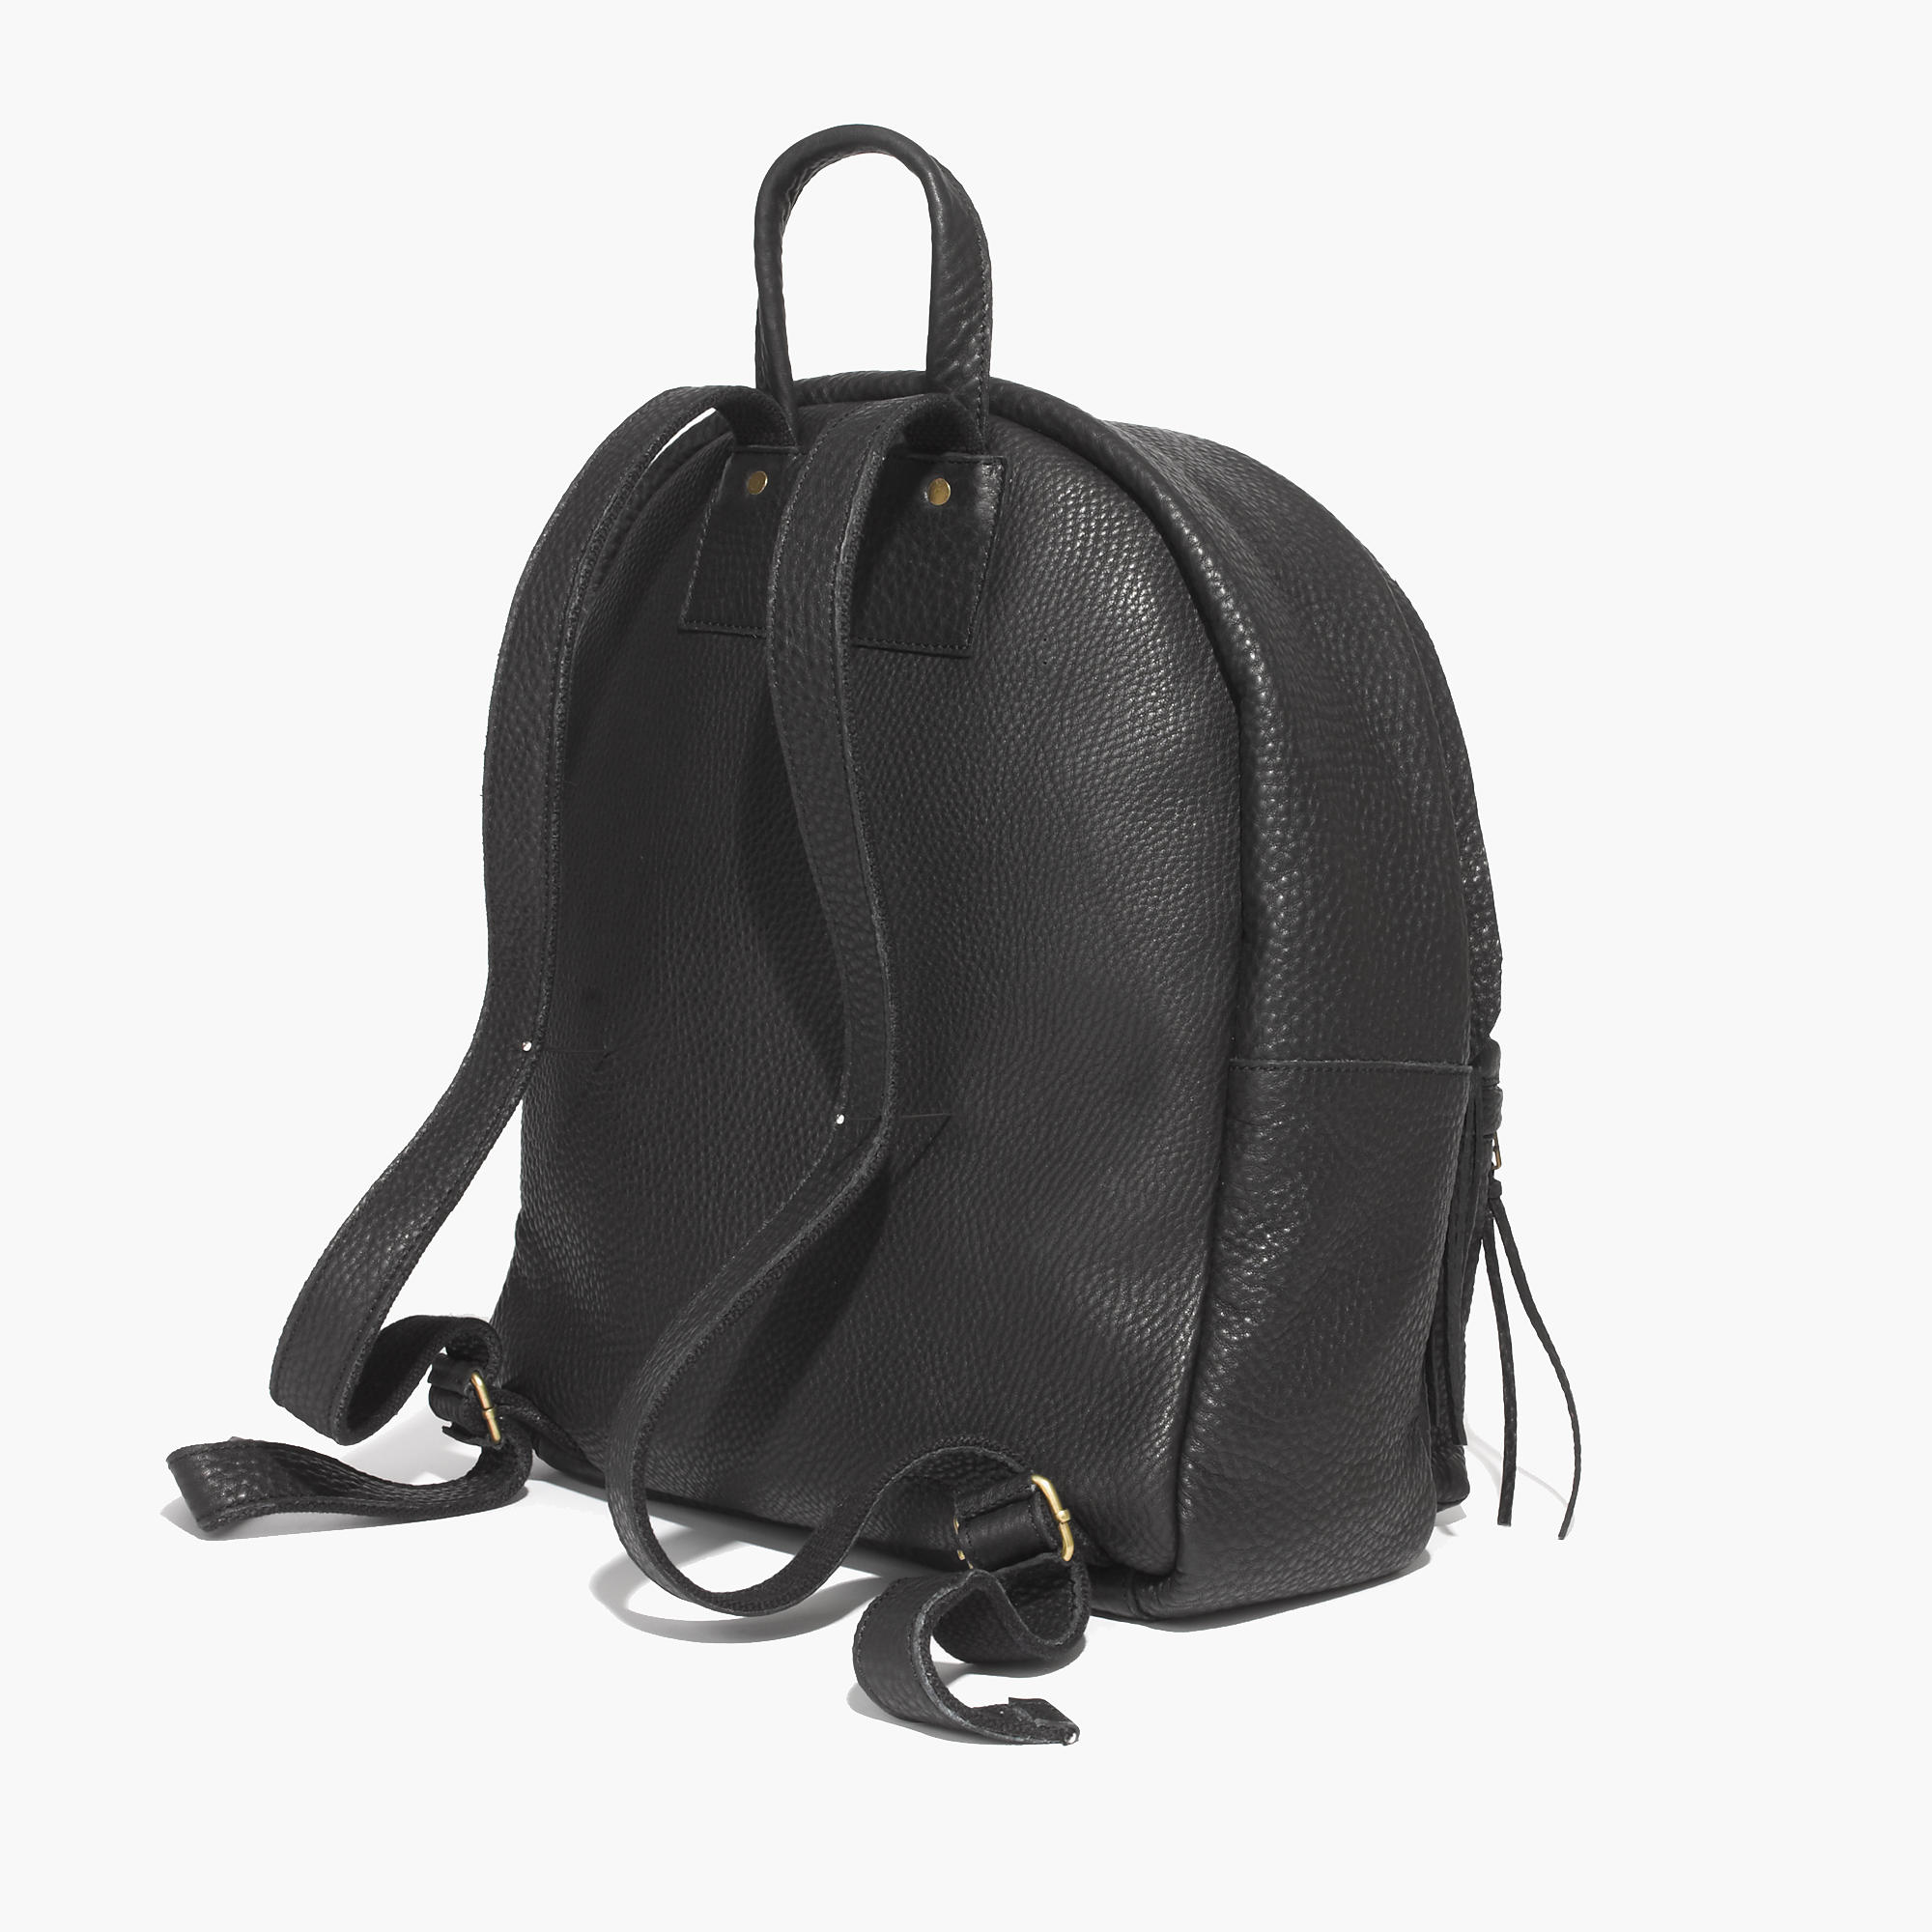 The lorimer leather backpack